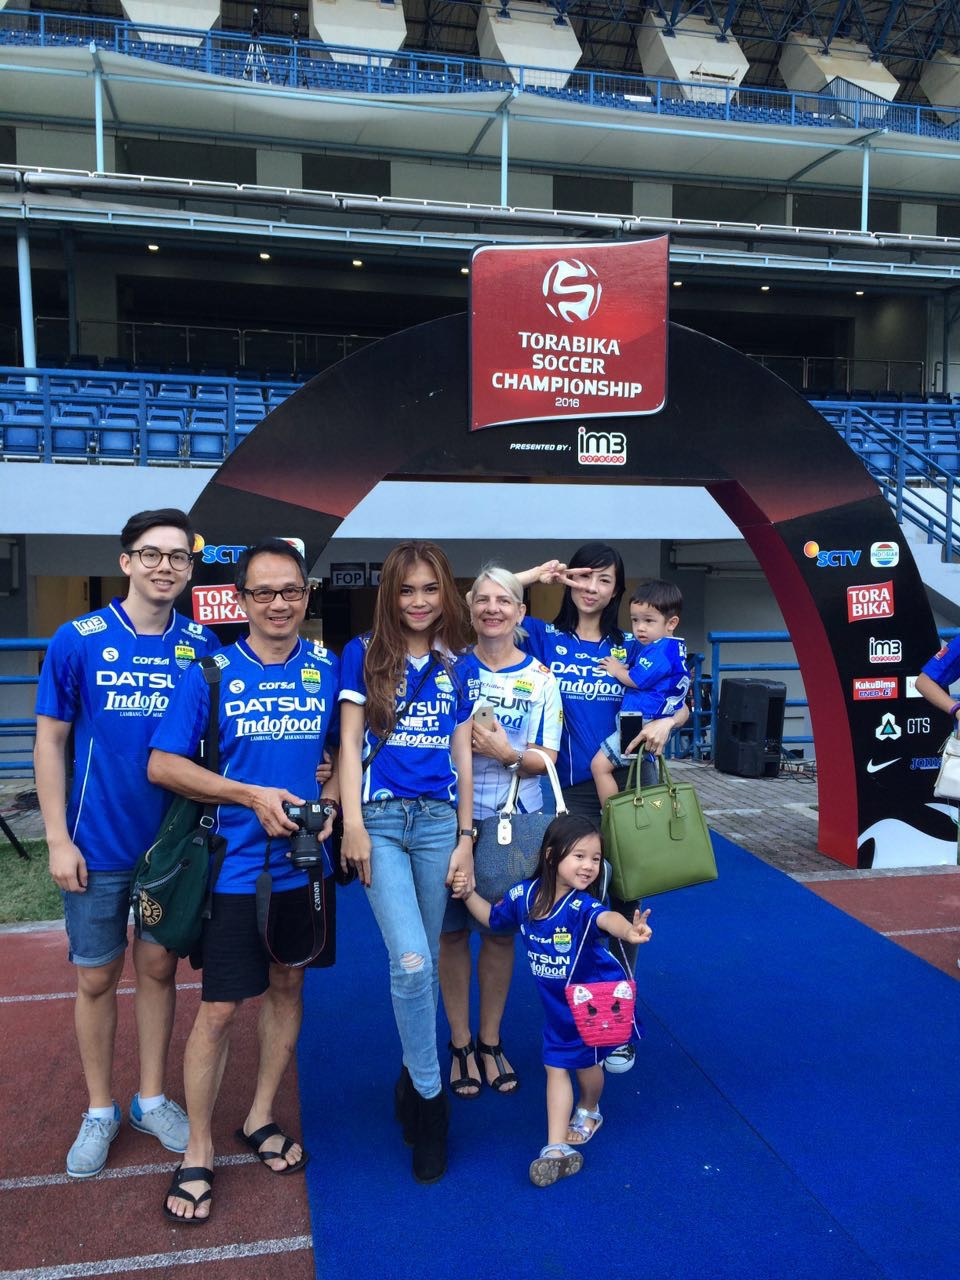 The whole family is watching the game Persib Bandung vs. PSM Makassar!